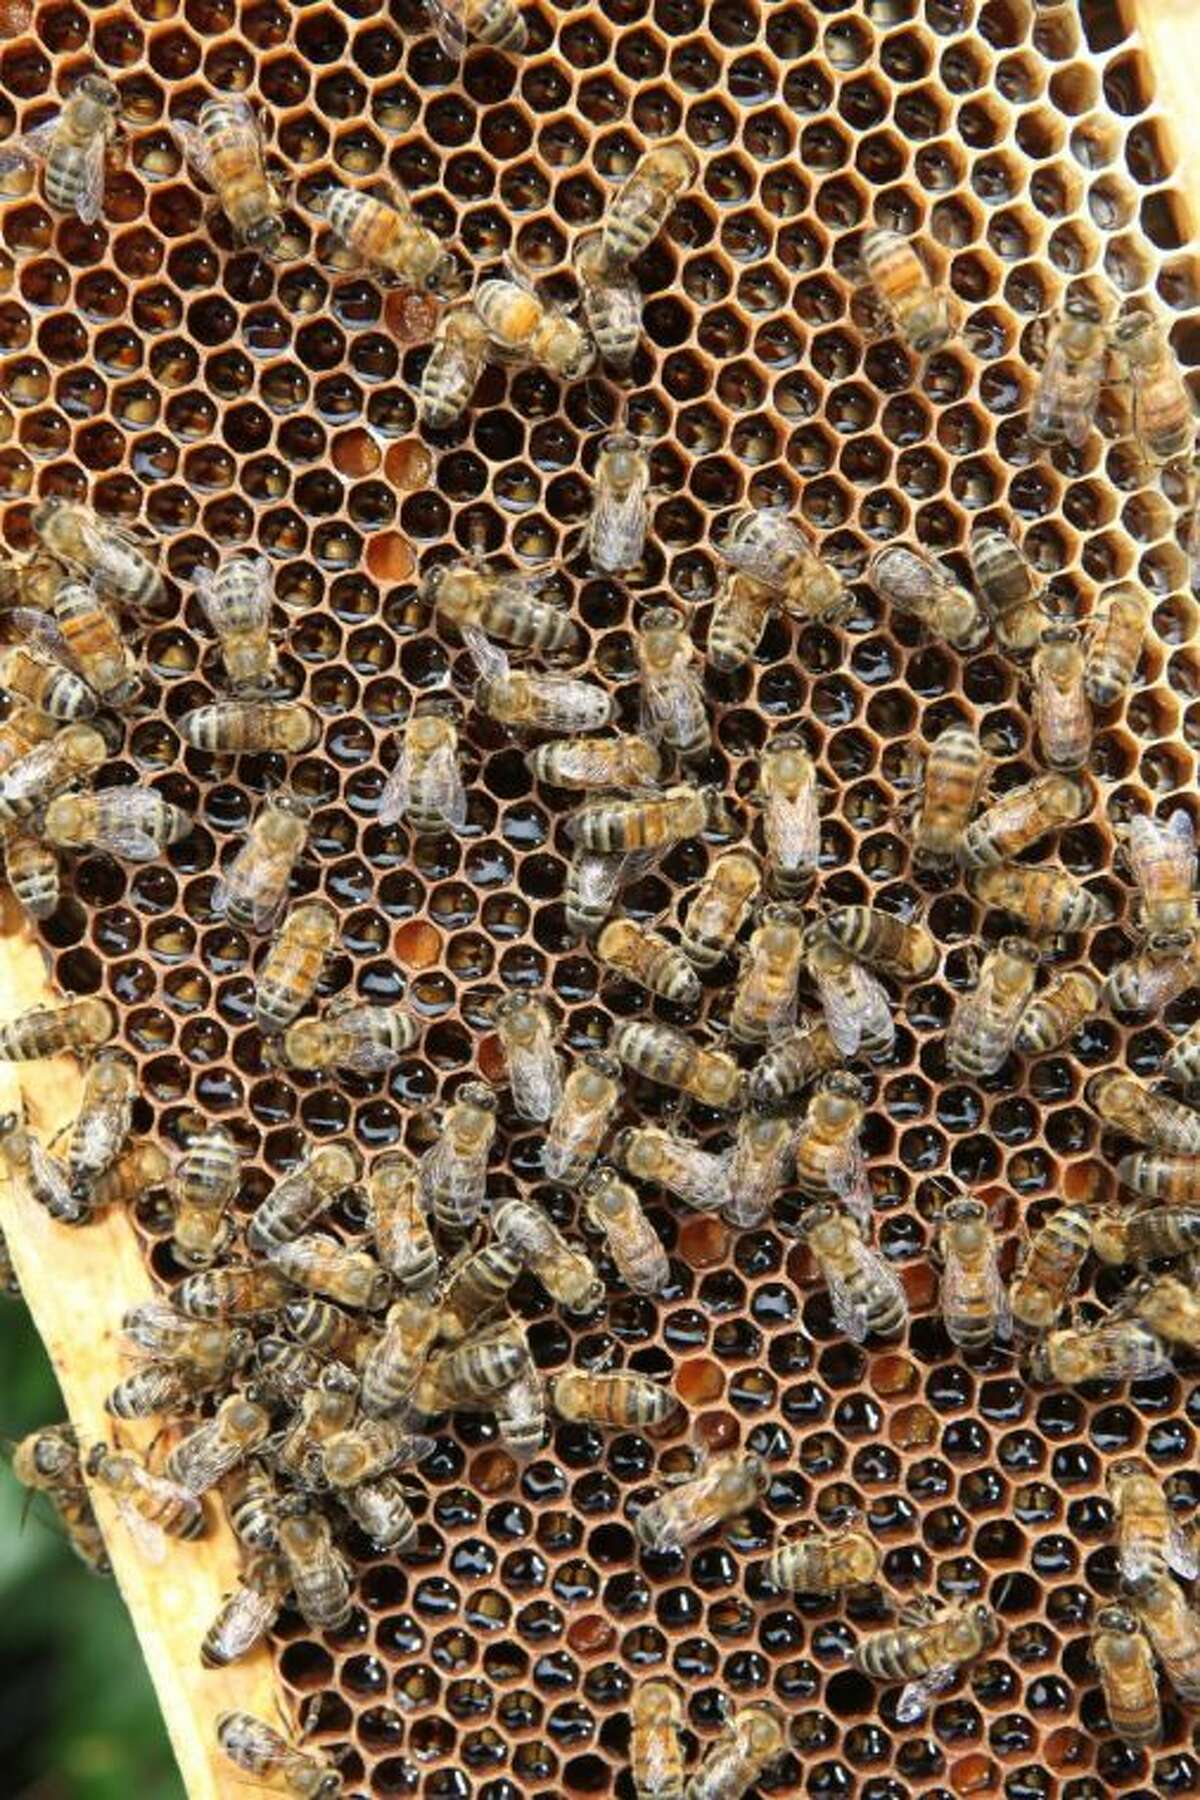 Honey bees at Mark Anderson's home in Bellaire.